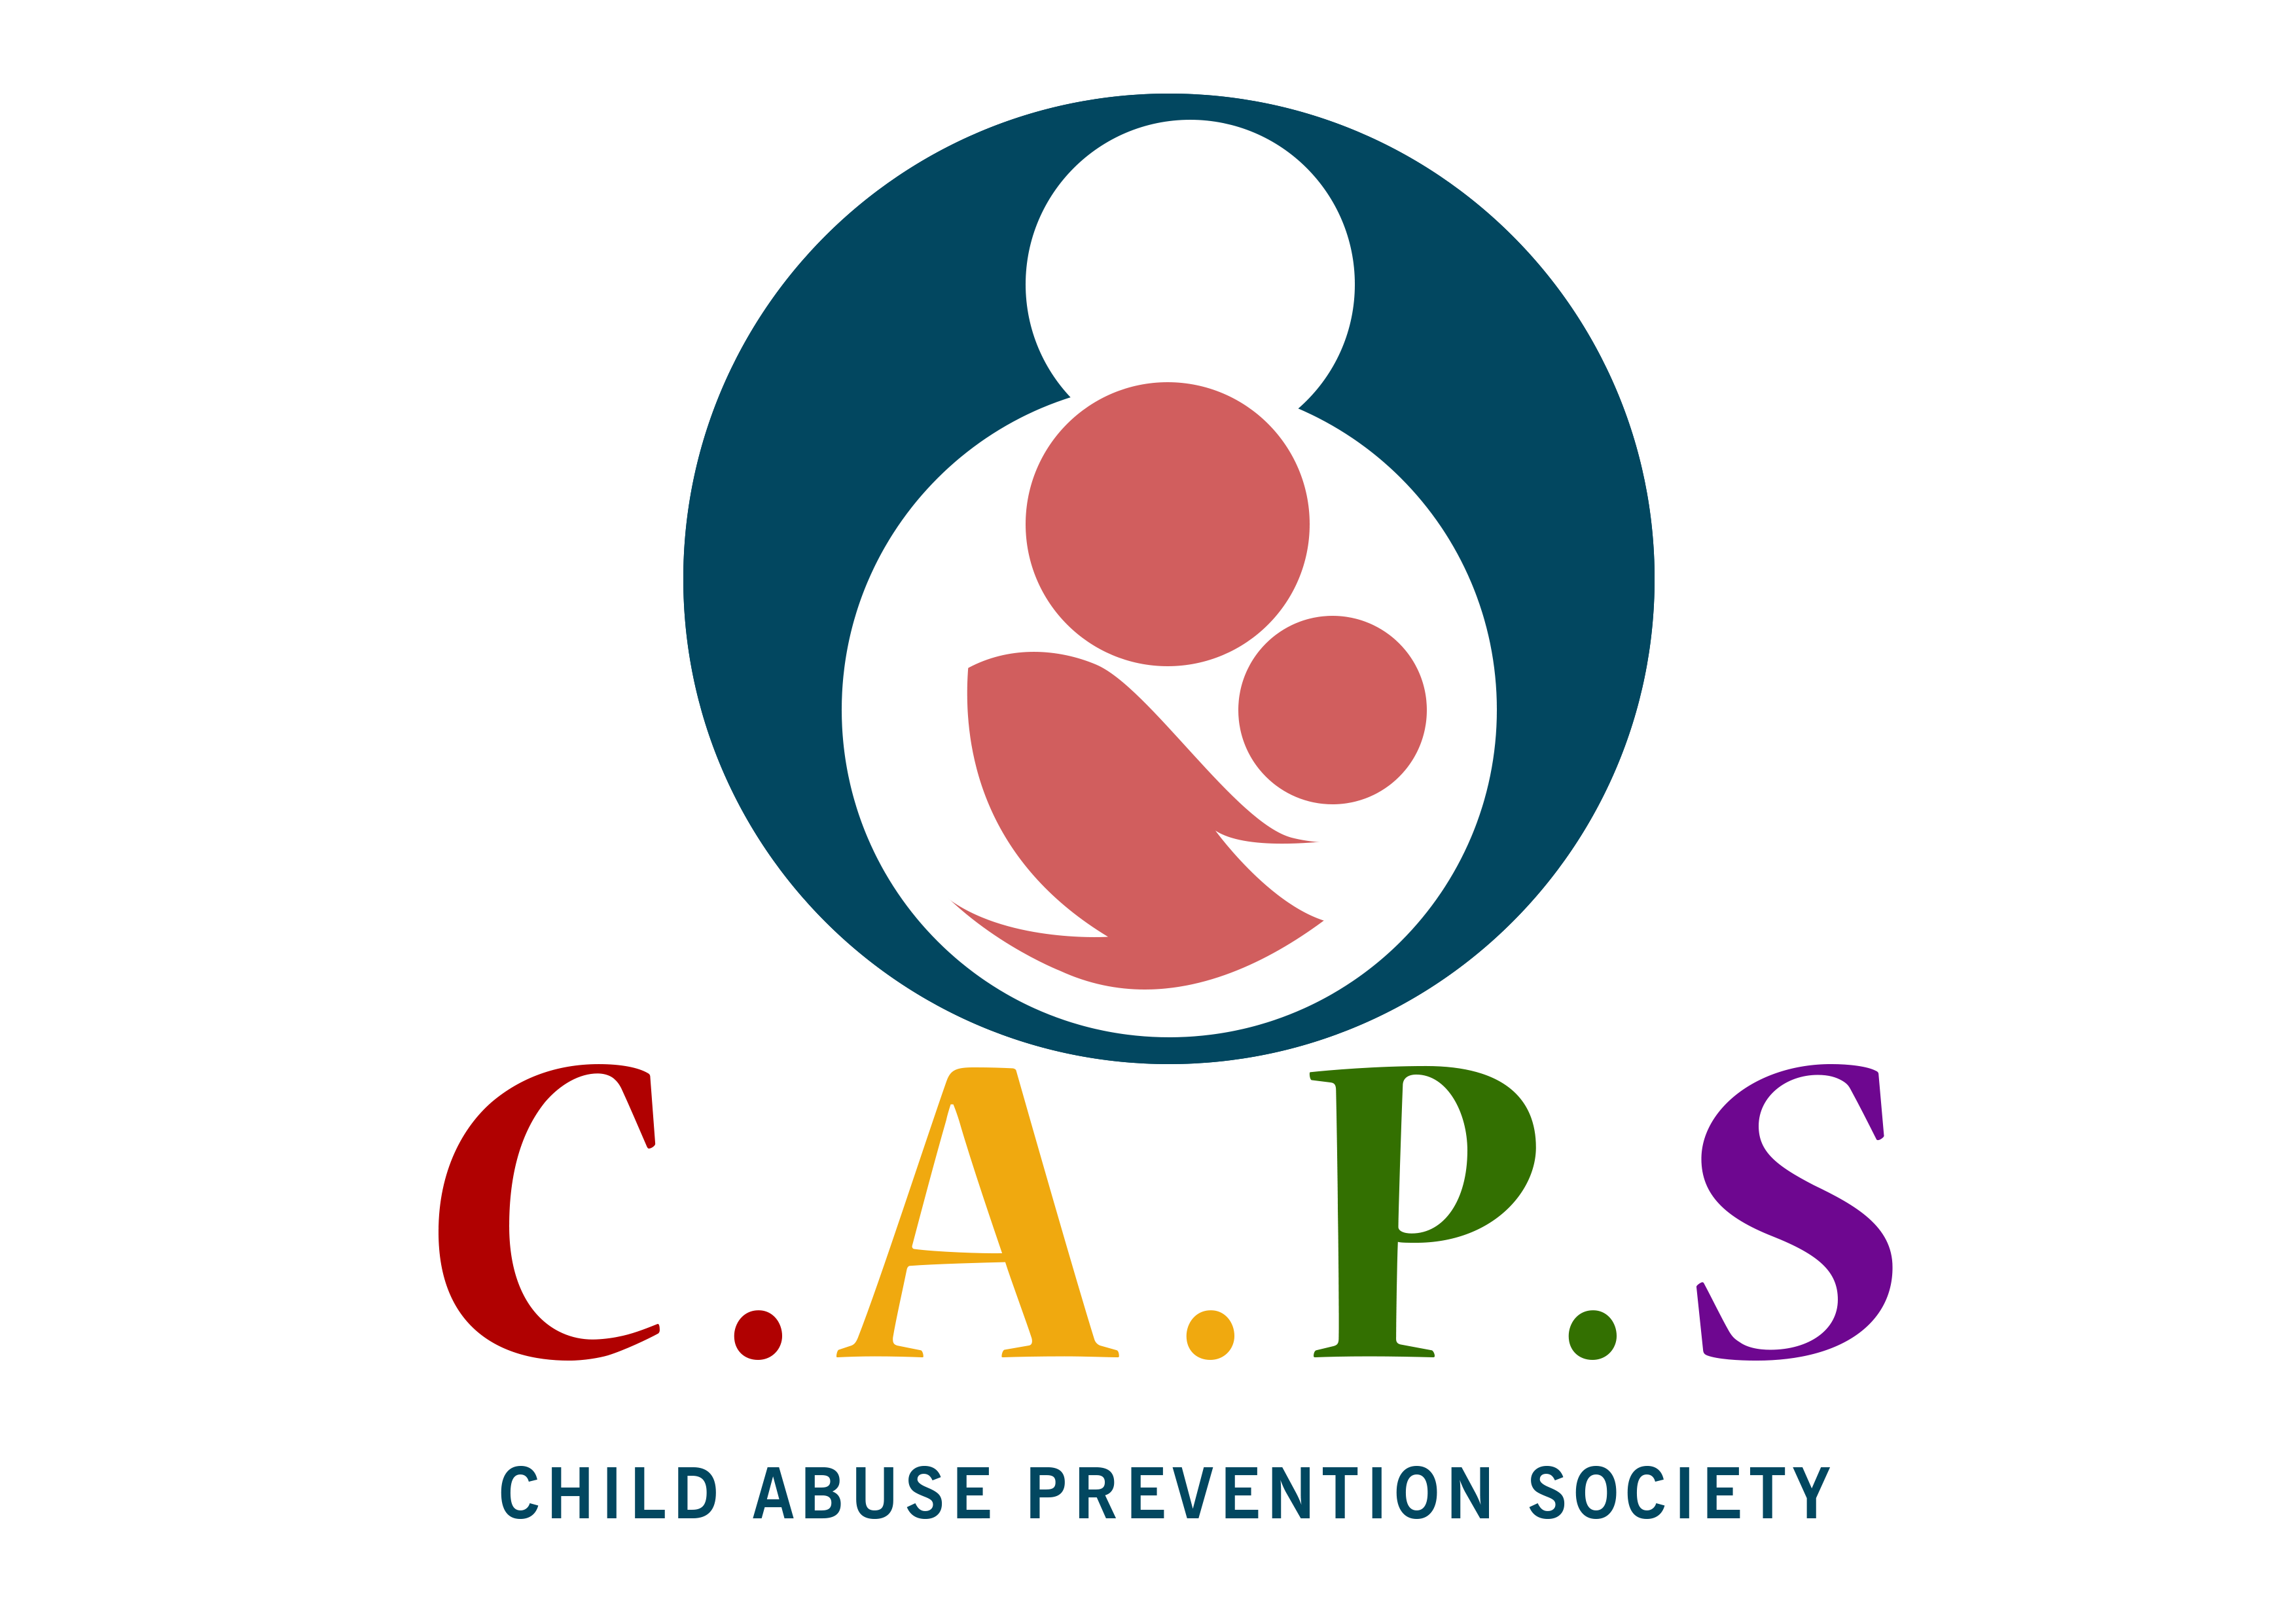 Child Abuse Prevention Society (CAPS)